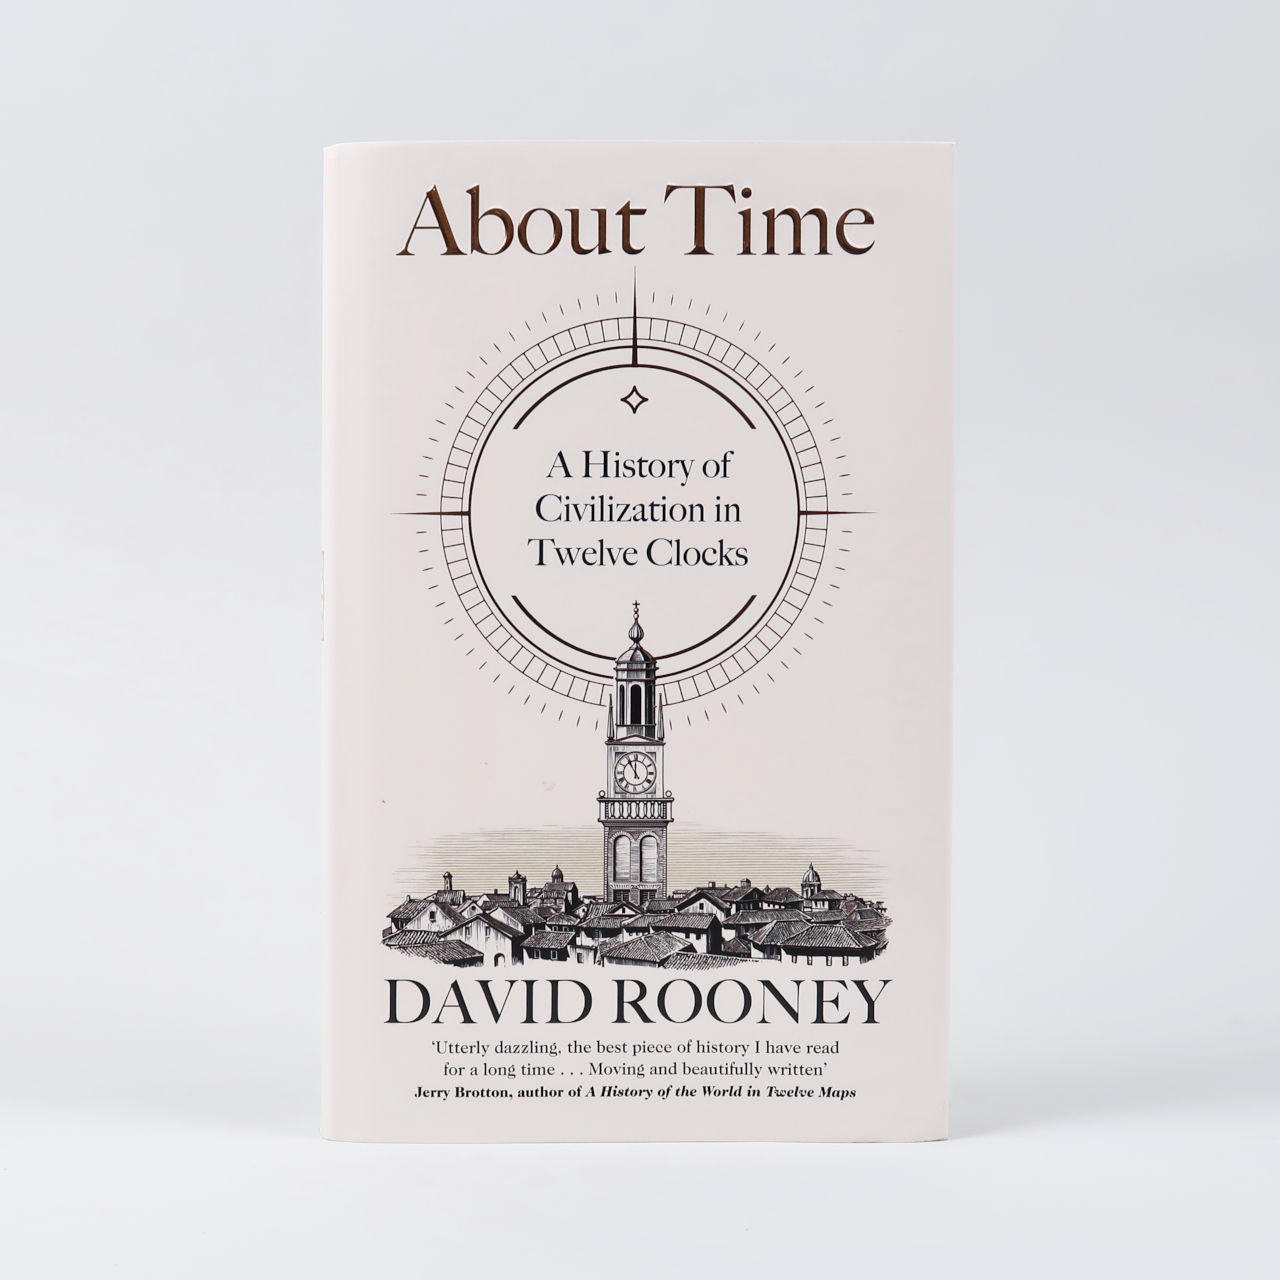 About Time - David Rooney